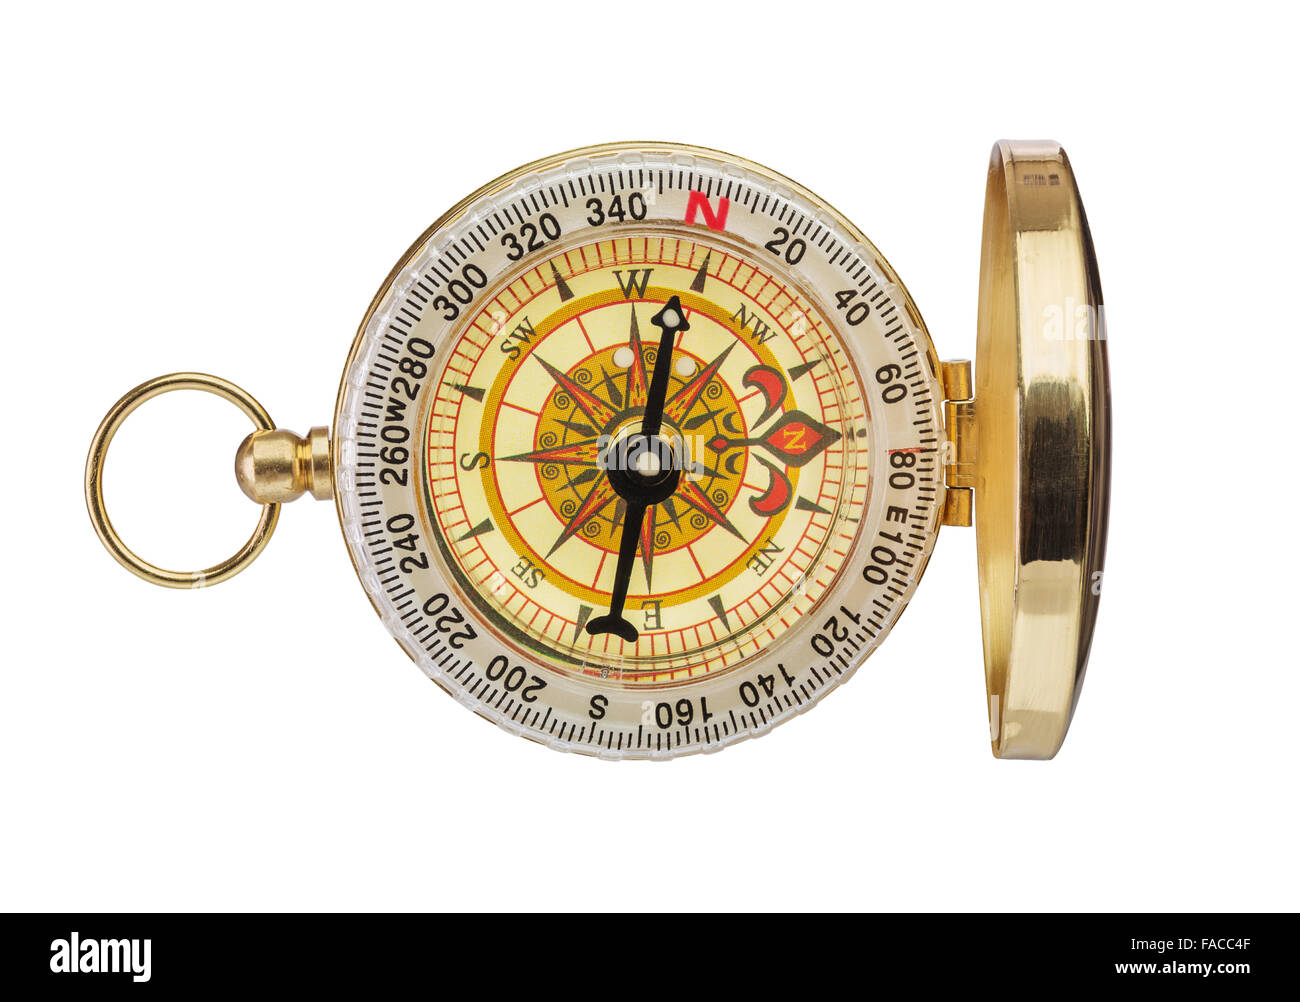 Old Vintage Retro Brass Compass Stock Photos & Old Vintage